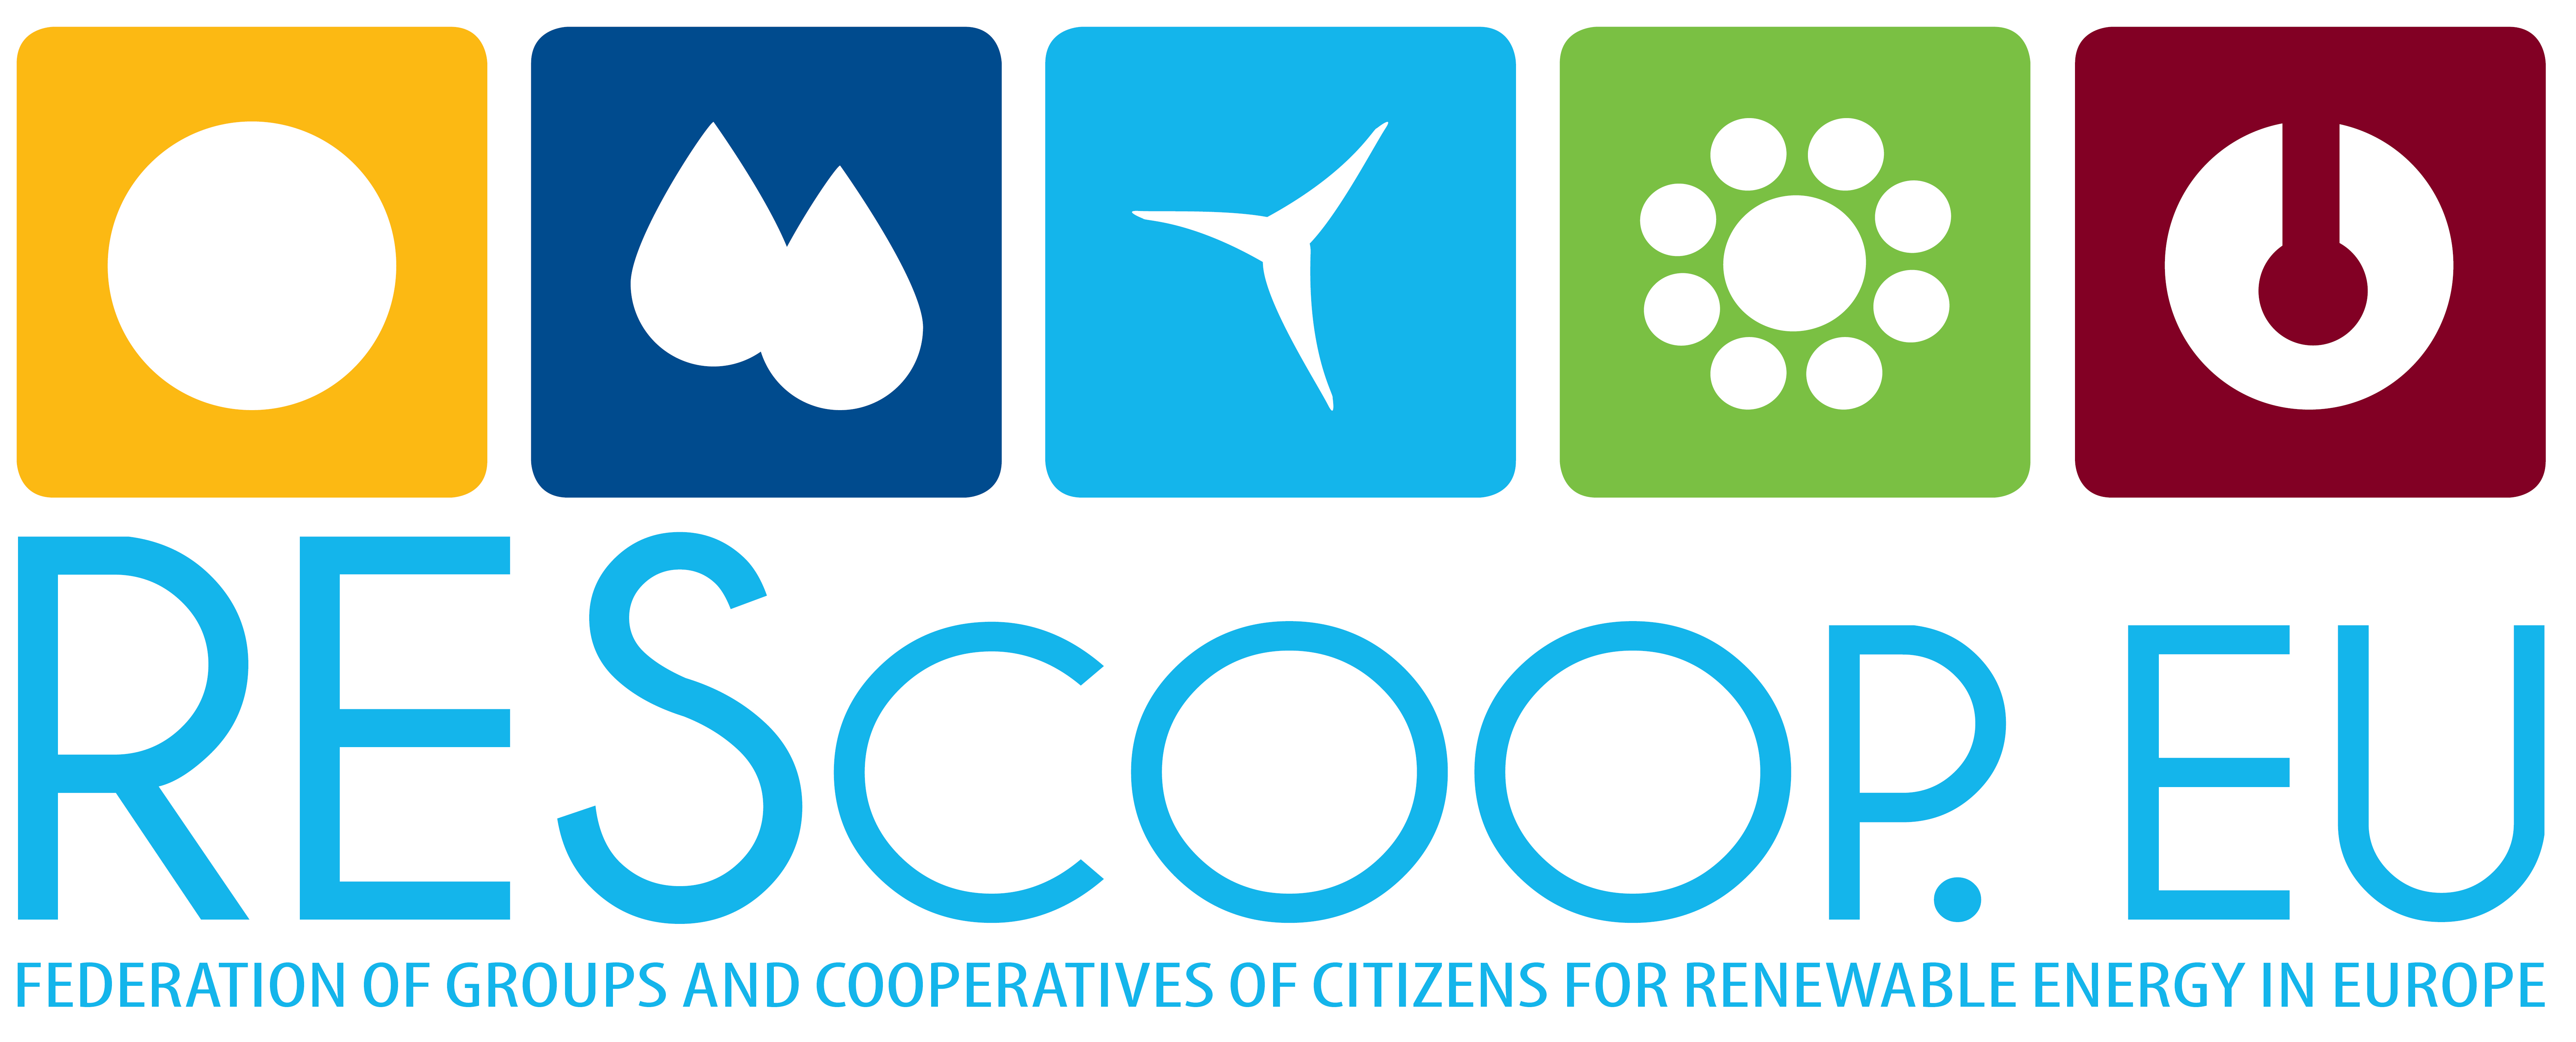 Logo-REScoop-with-subtitle-high-resolution (3)